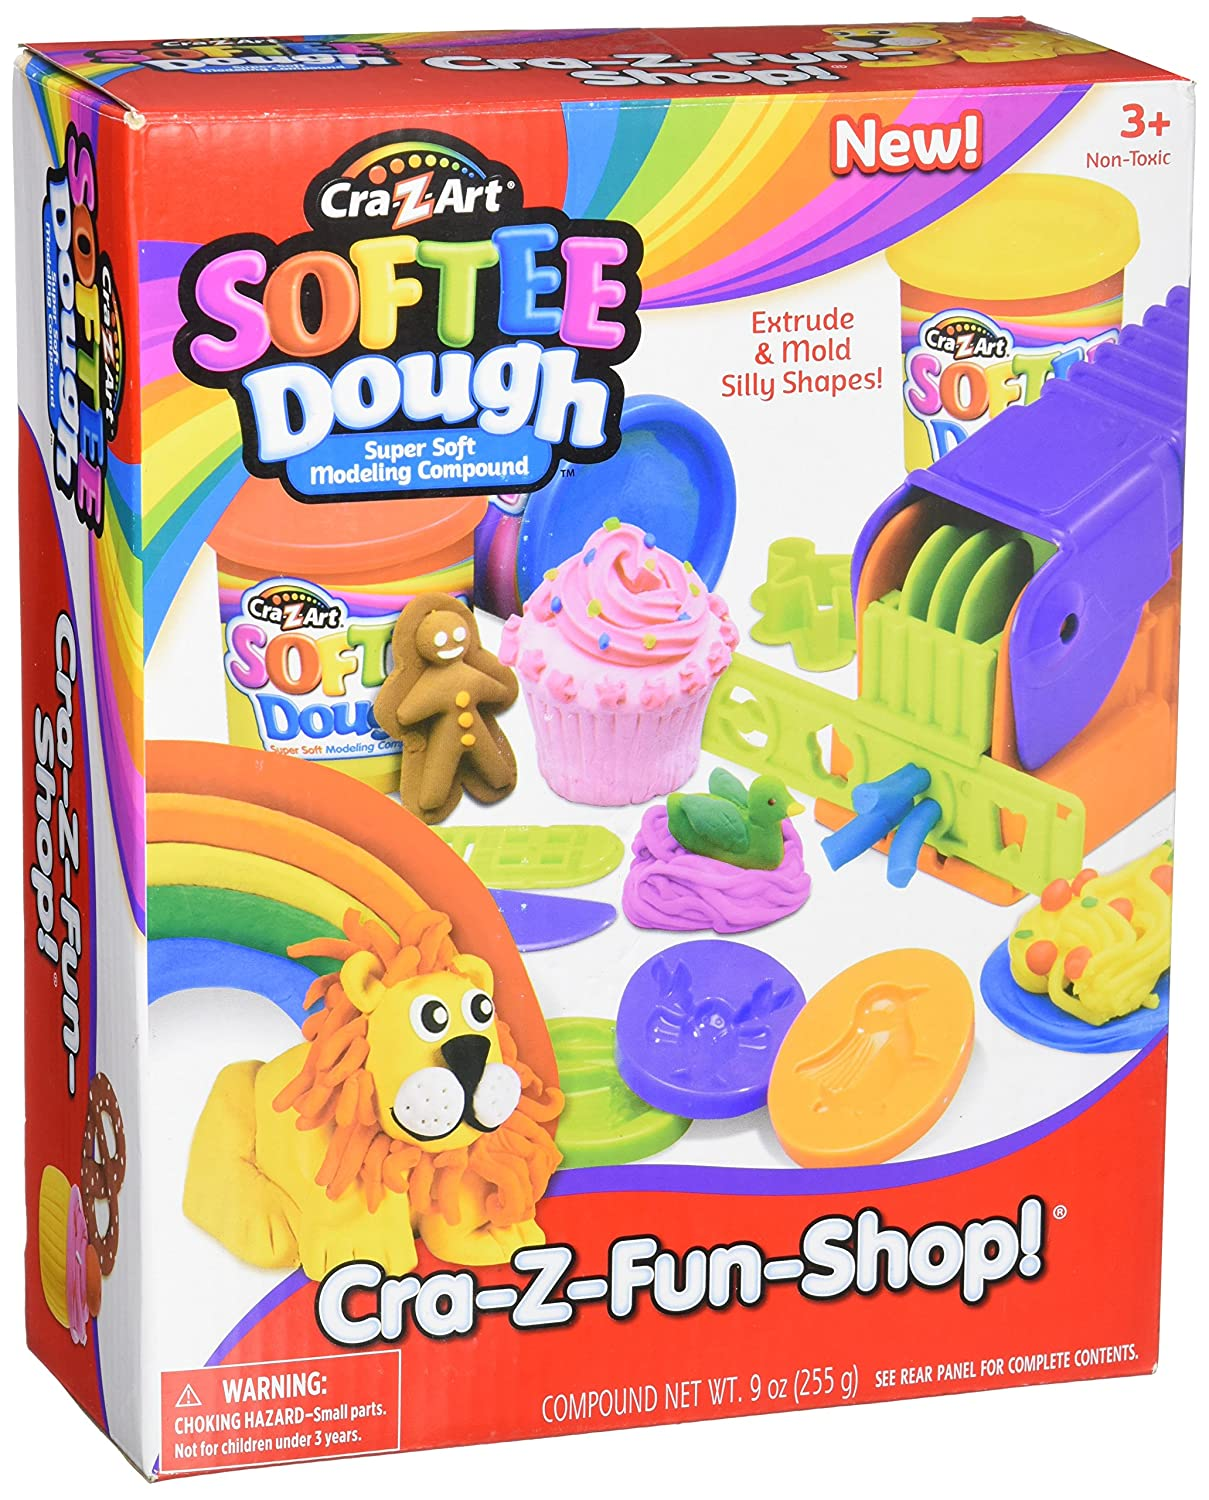 Cra-z-art Softee Dough- Cra-z-fun Shop